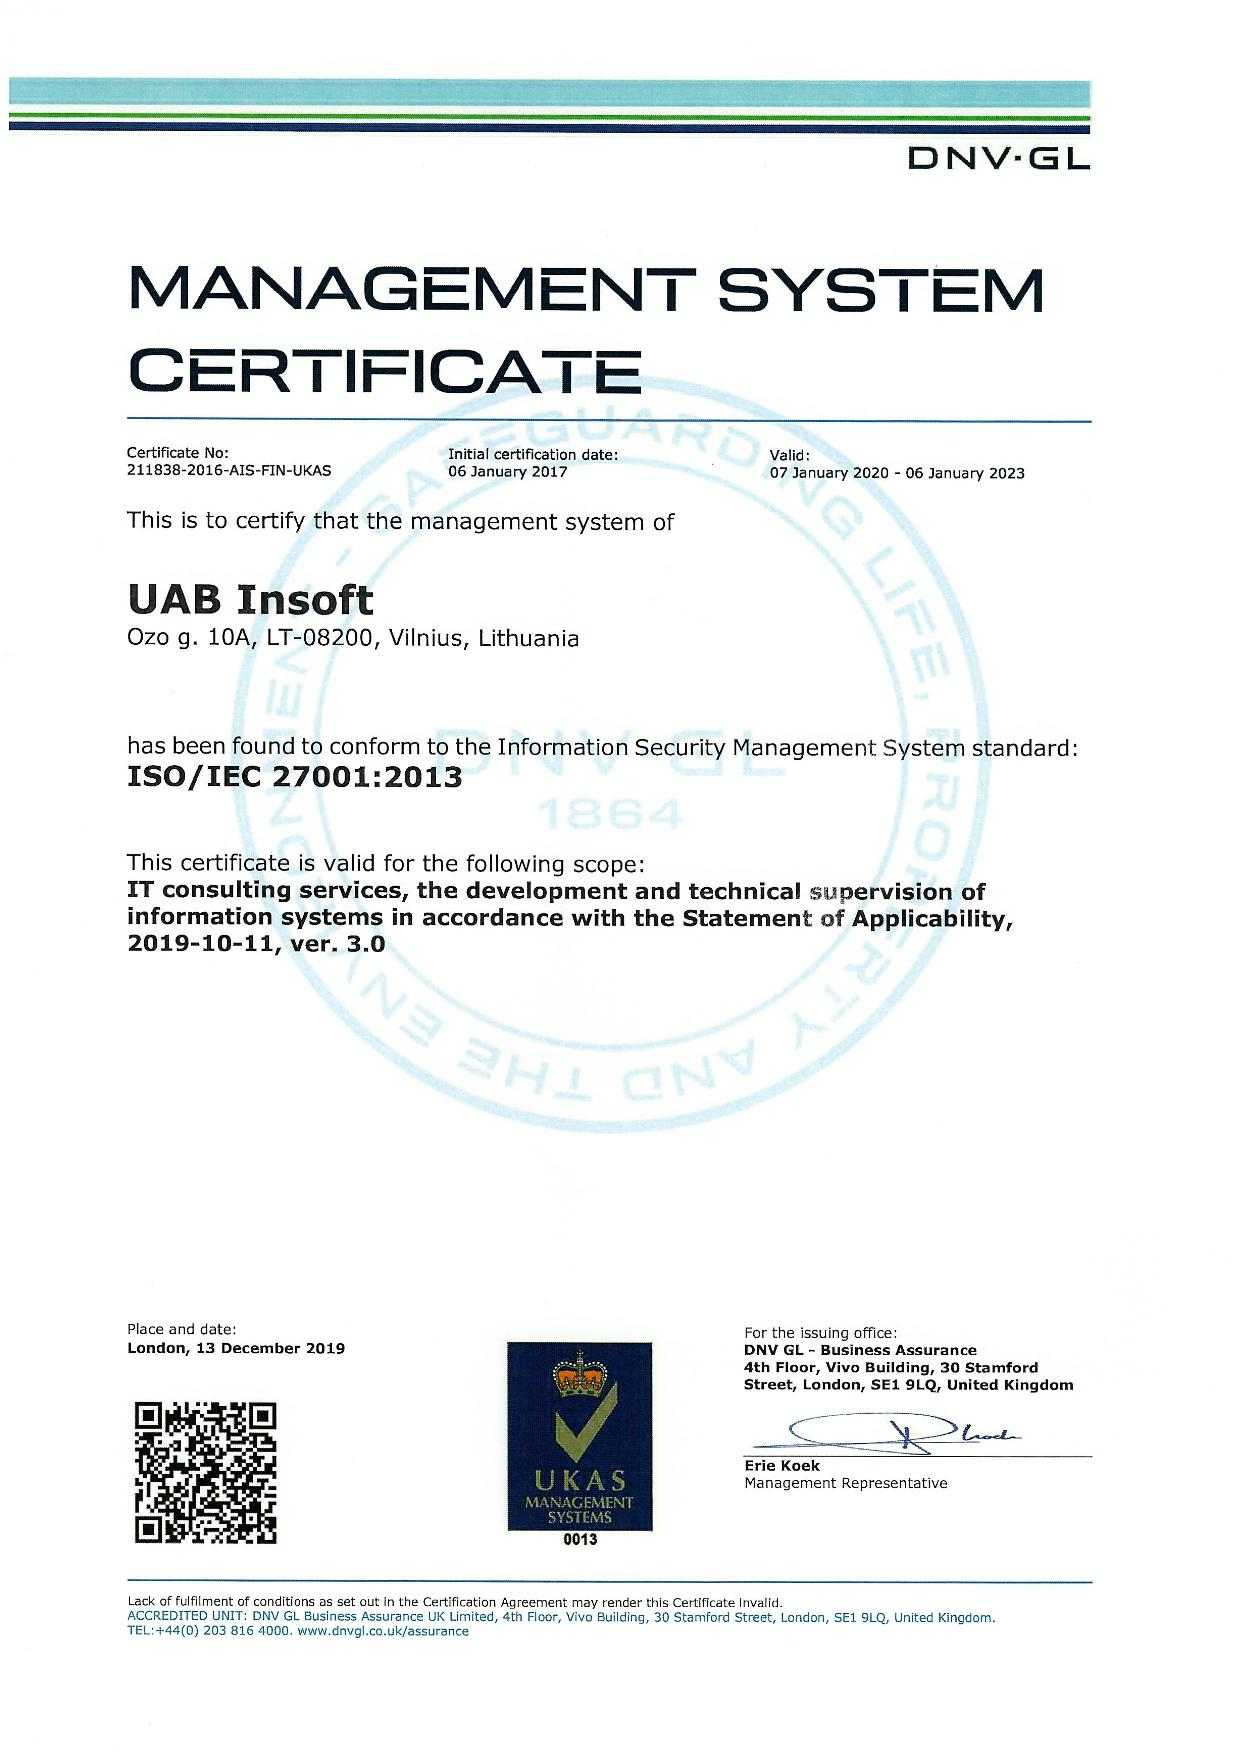 Management System Certificate ISO/IEC 27001:2013